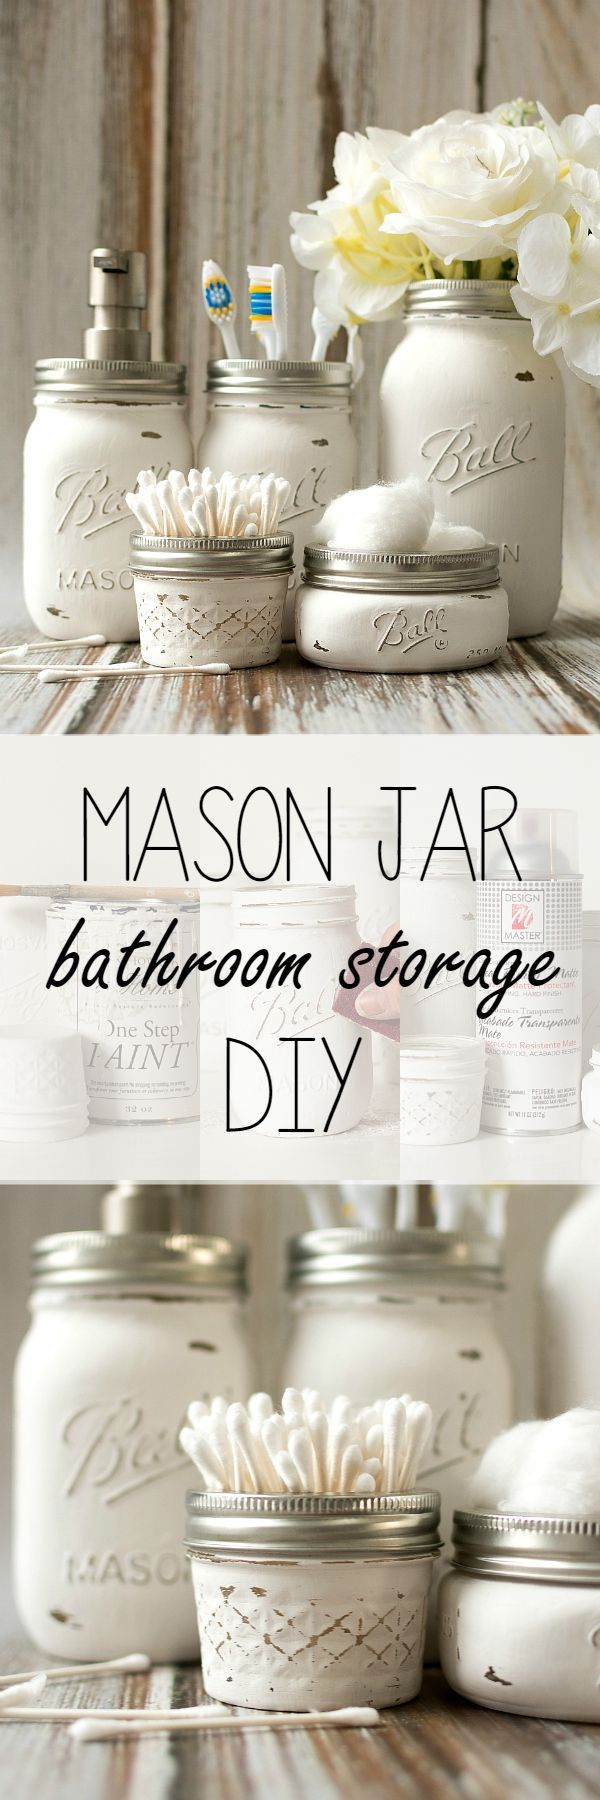 Bathroom diy decorations - How To Paint And Distress These Farmhouse Style Mason Jars Bathroom Storage And Accessories